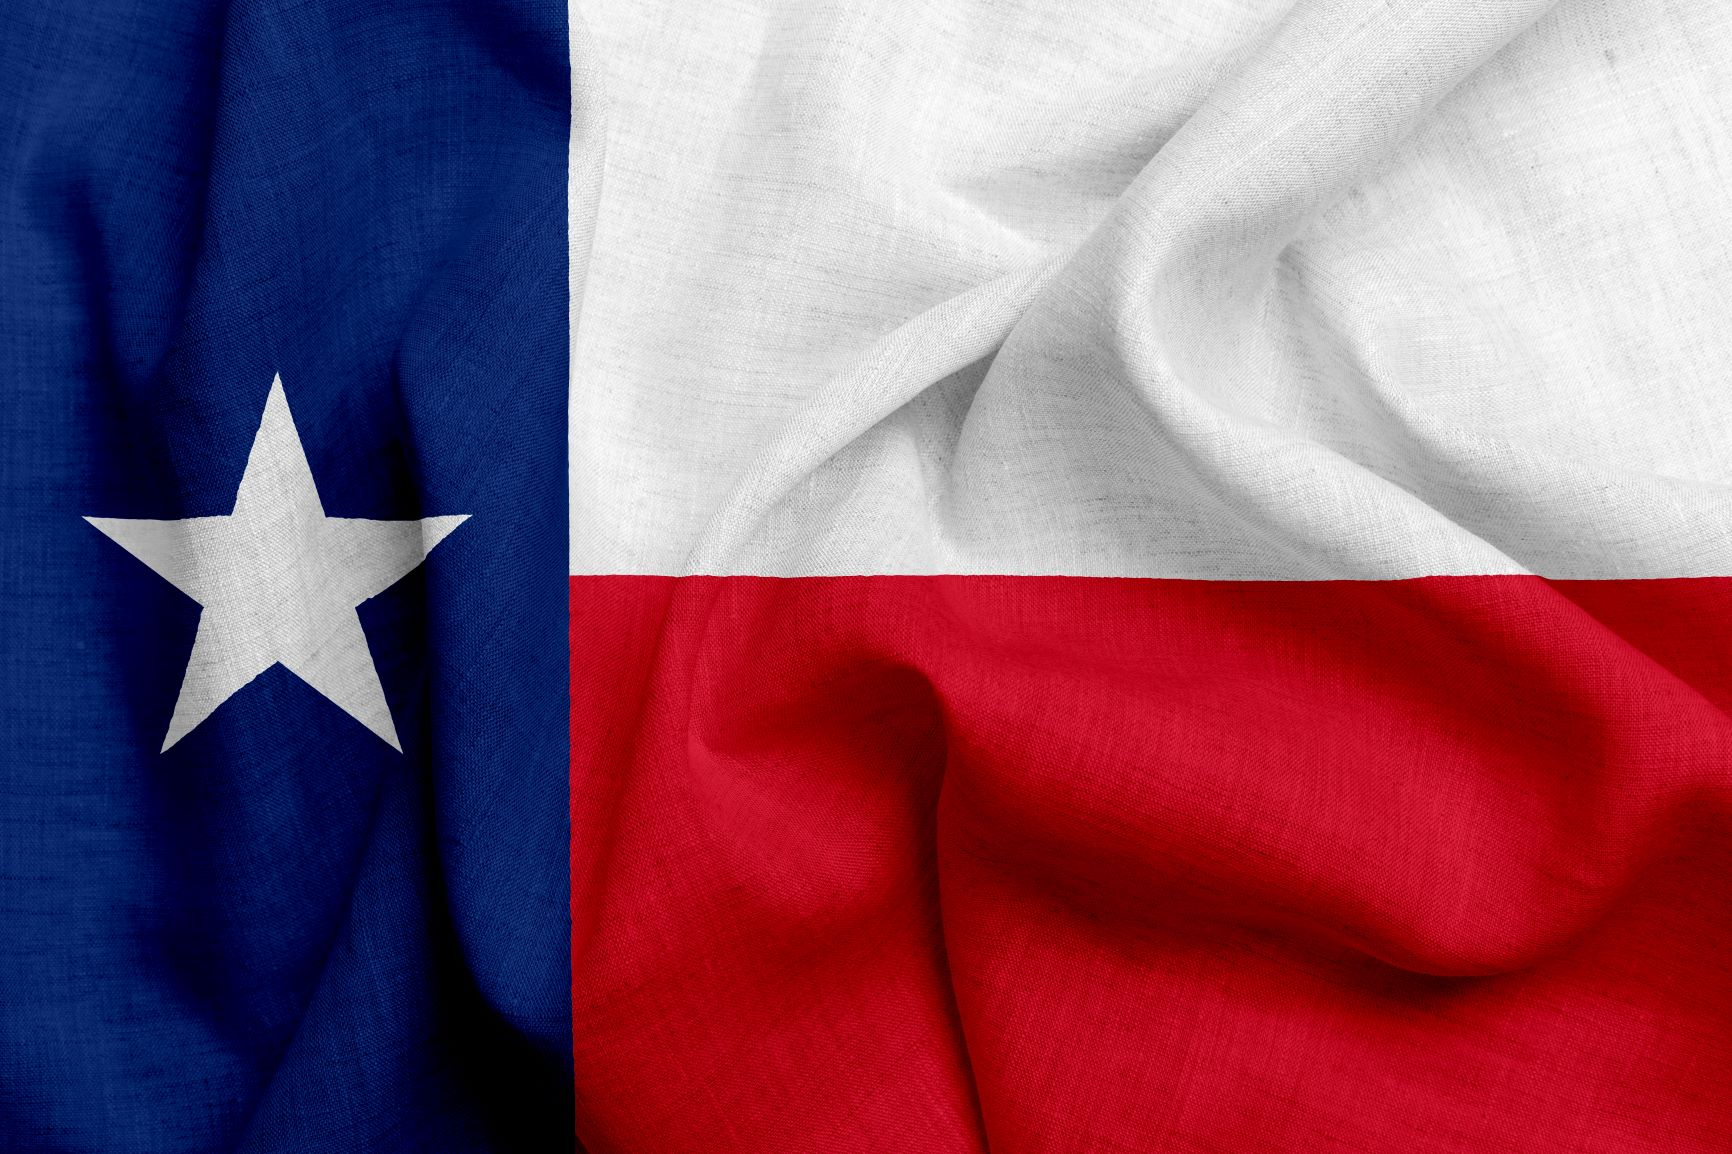 Texas Saves Itself From the Cost of a Natural Gas Ban